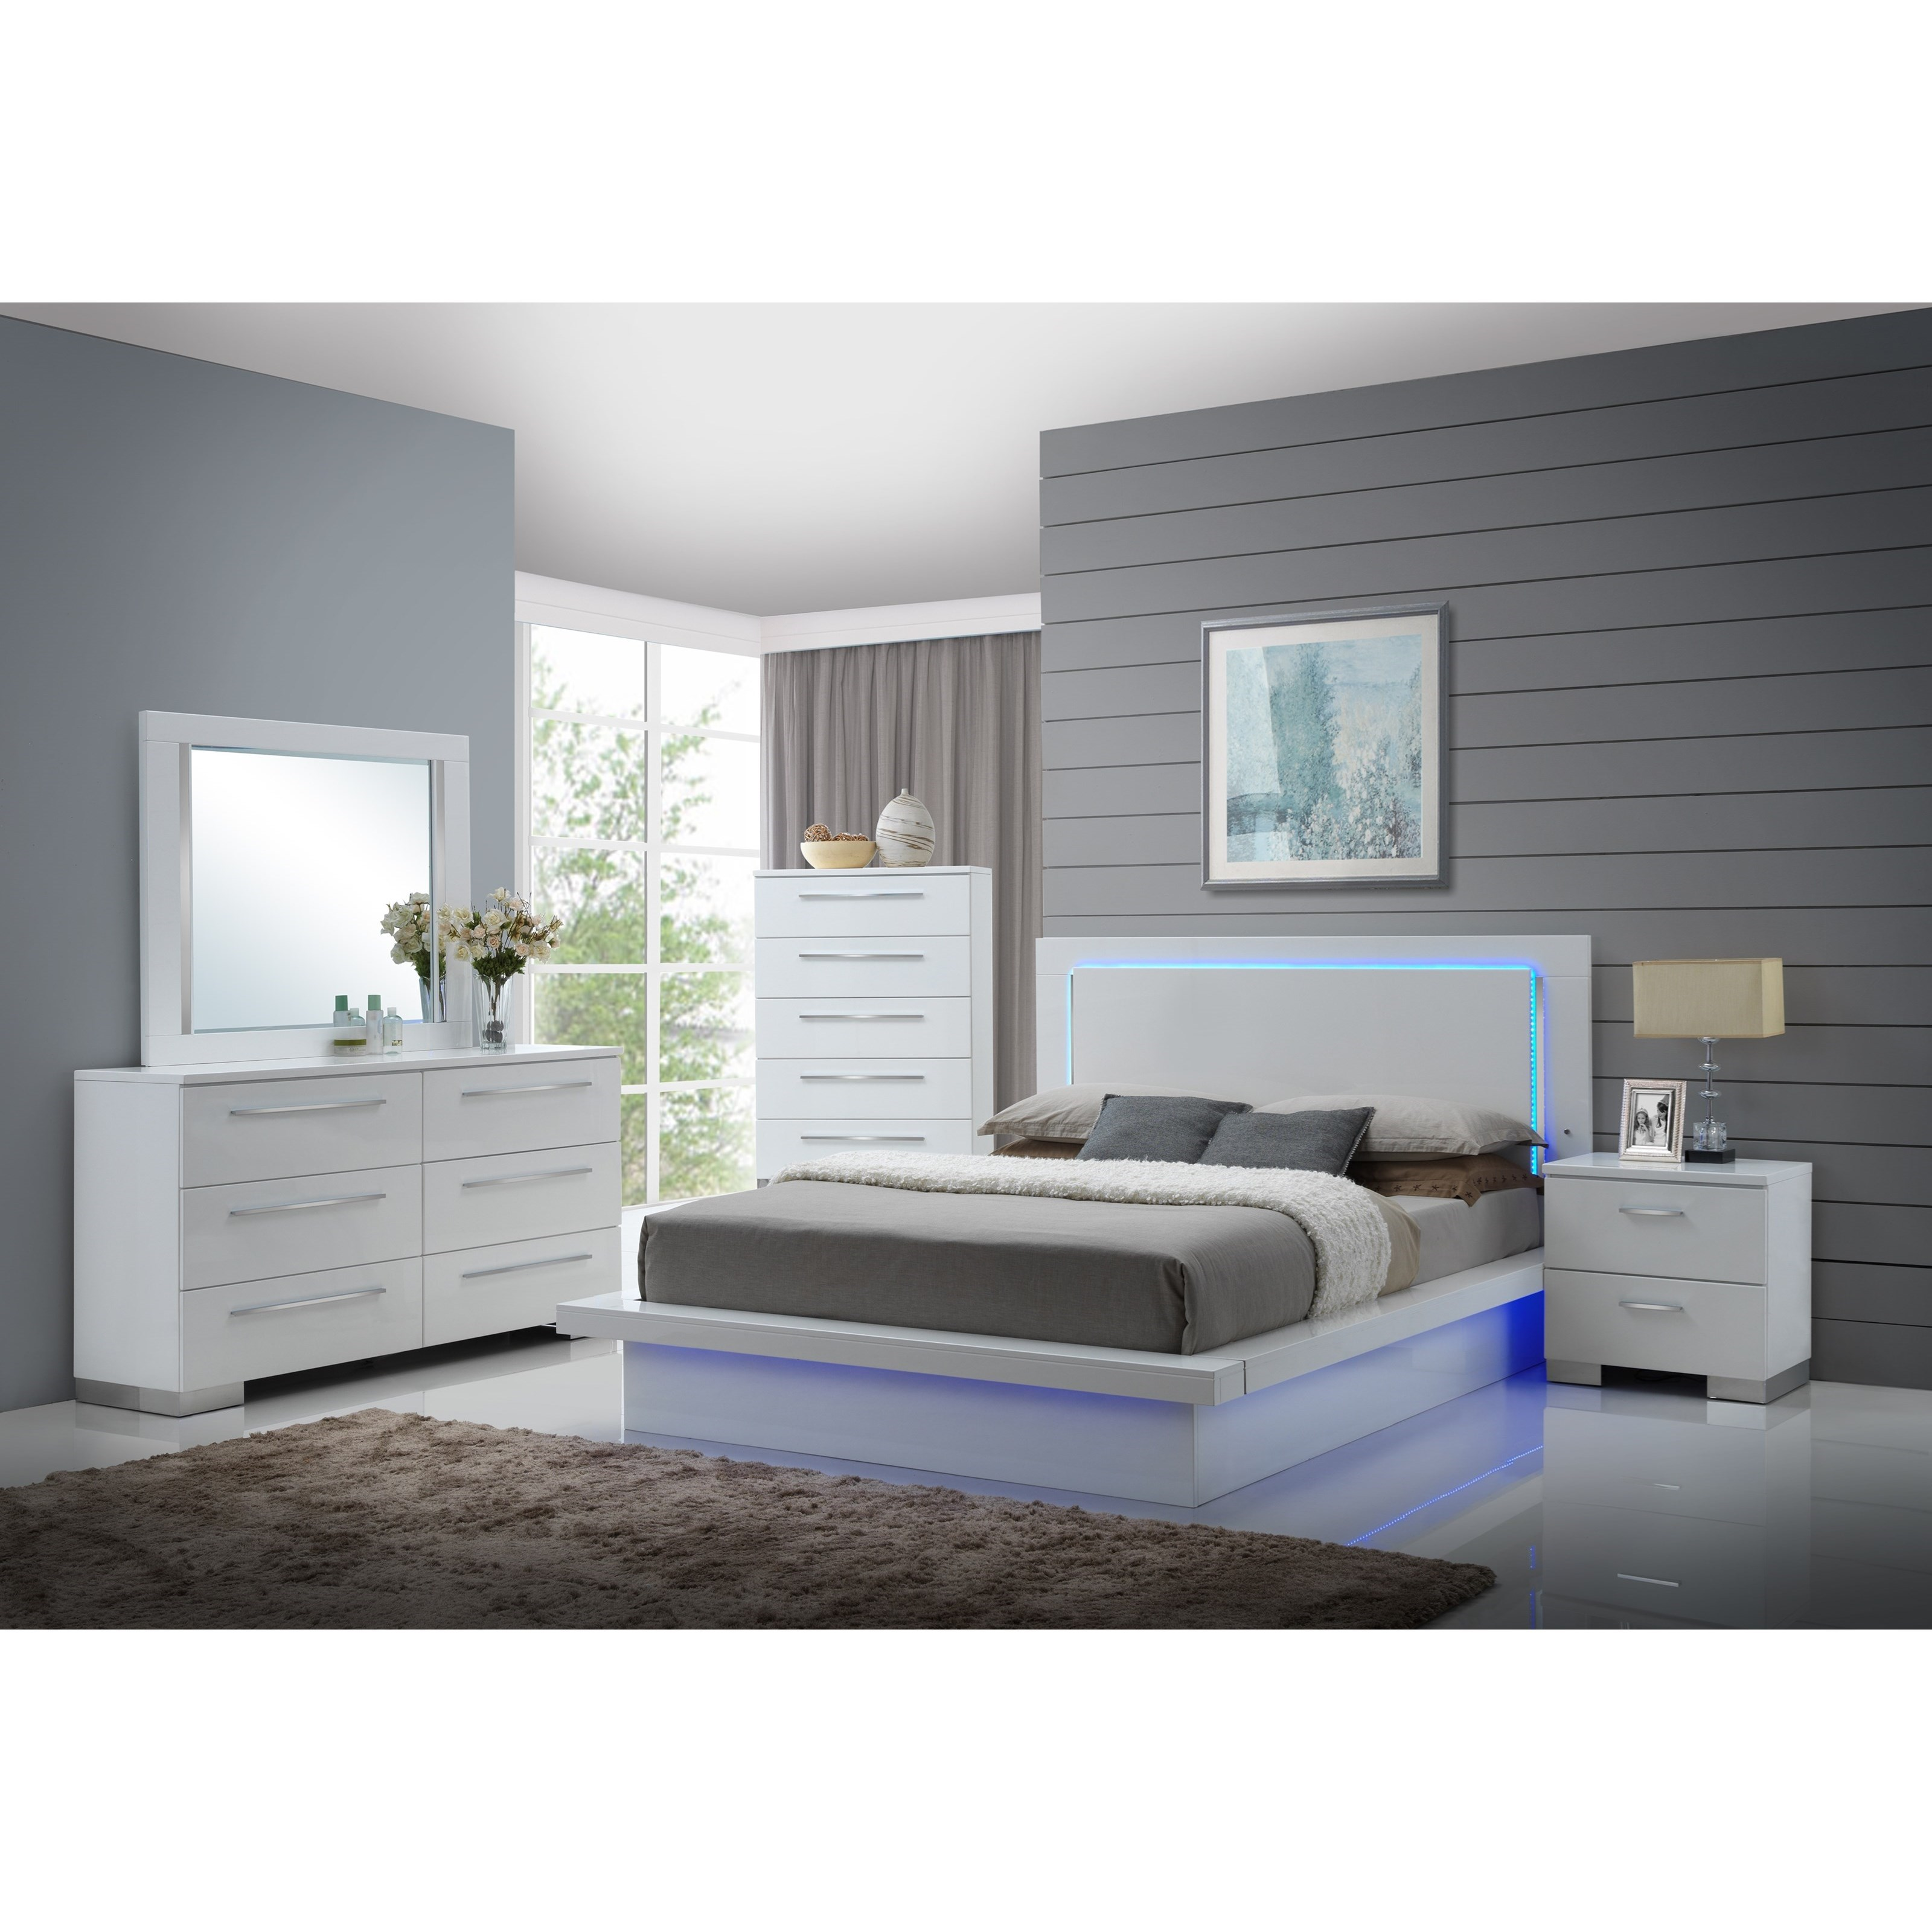 Sapphire Queen Bedroom Group by New Classic at Beds N Stuff